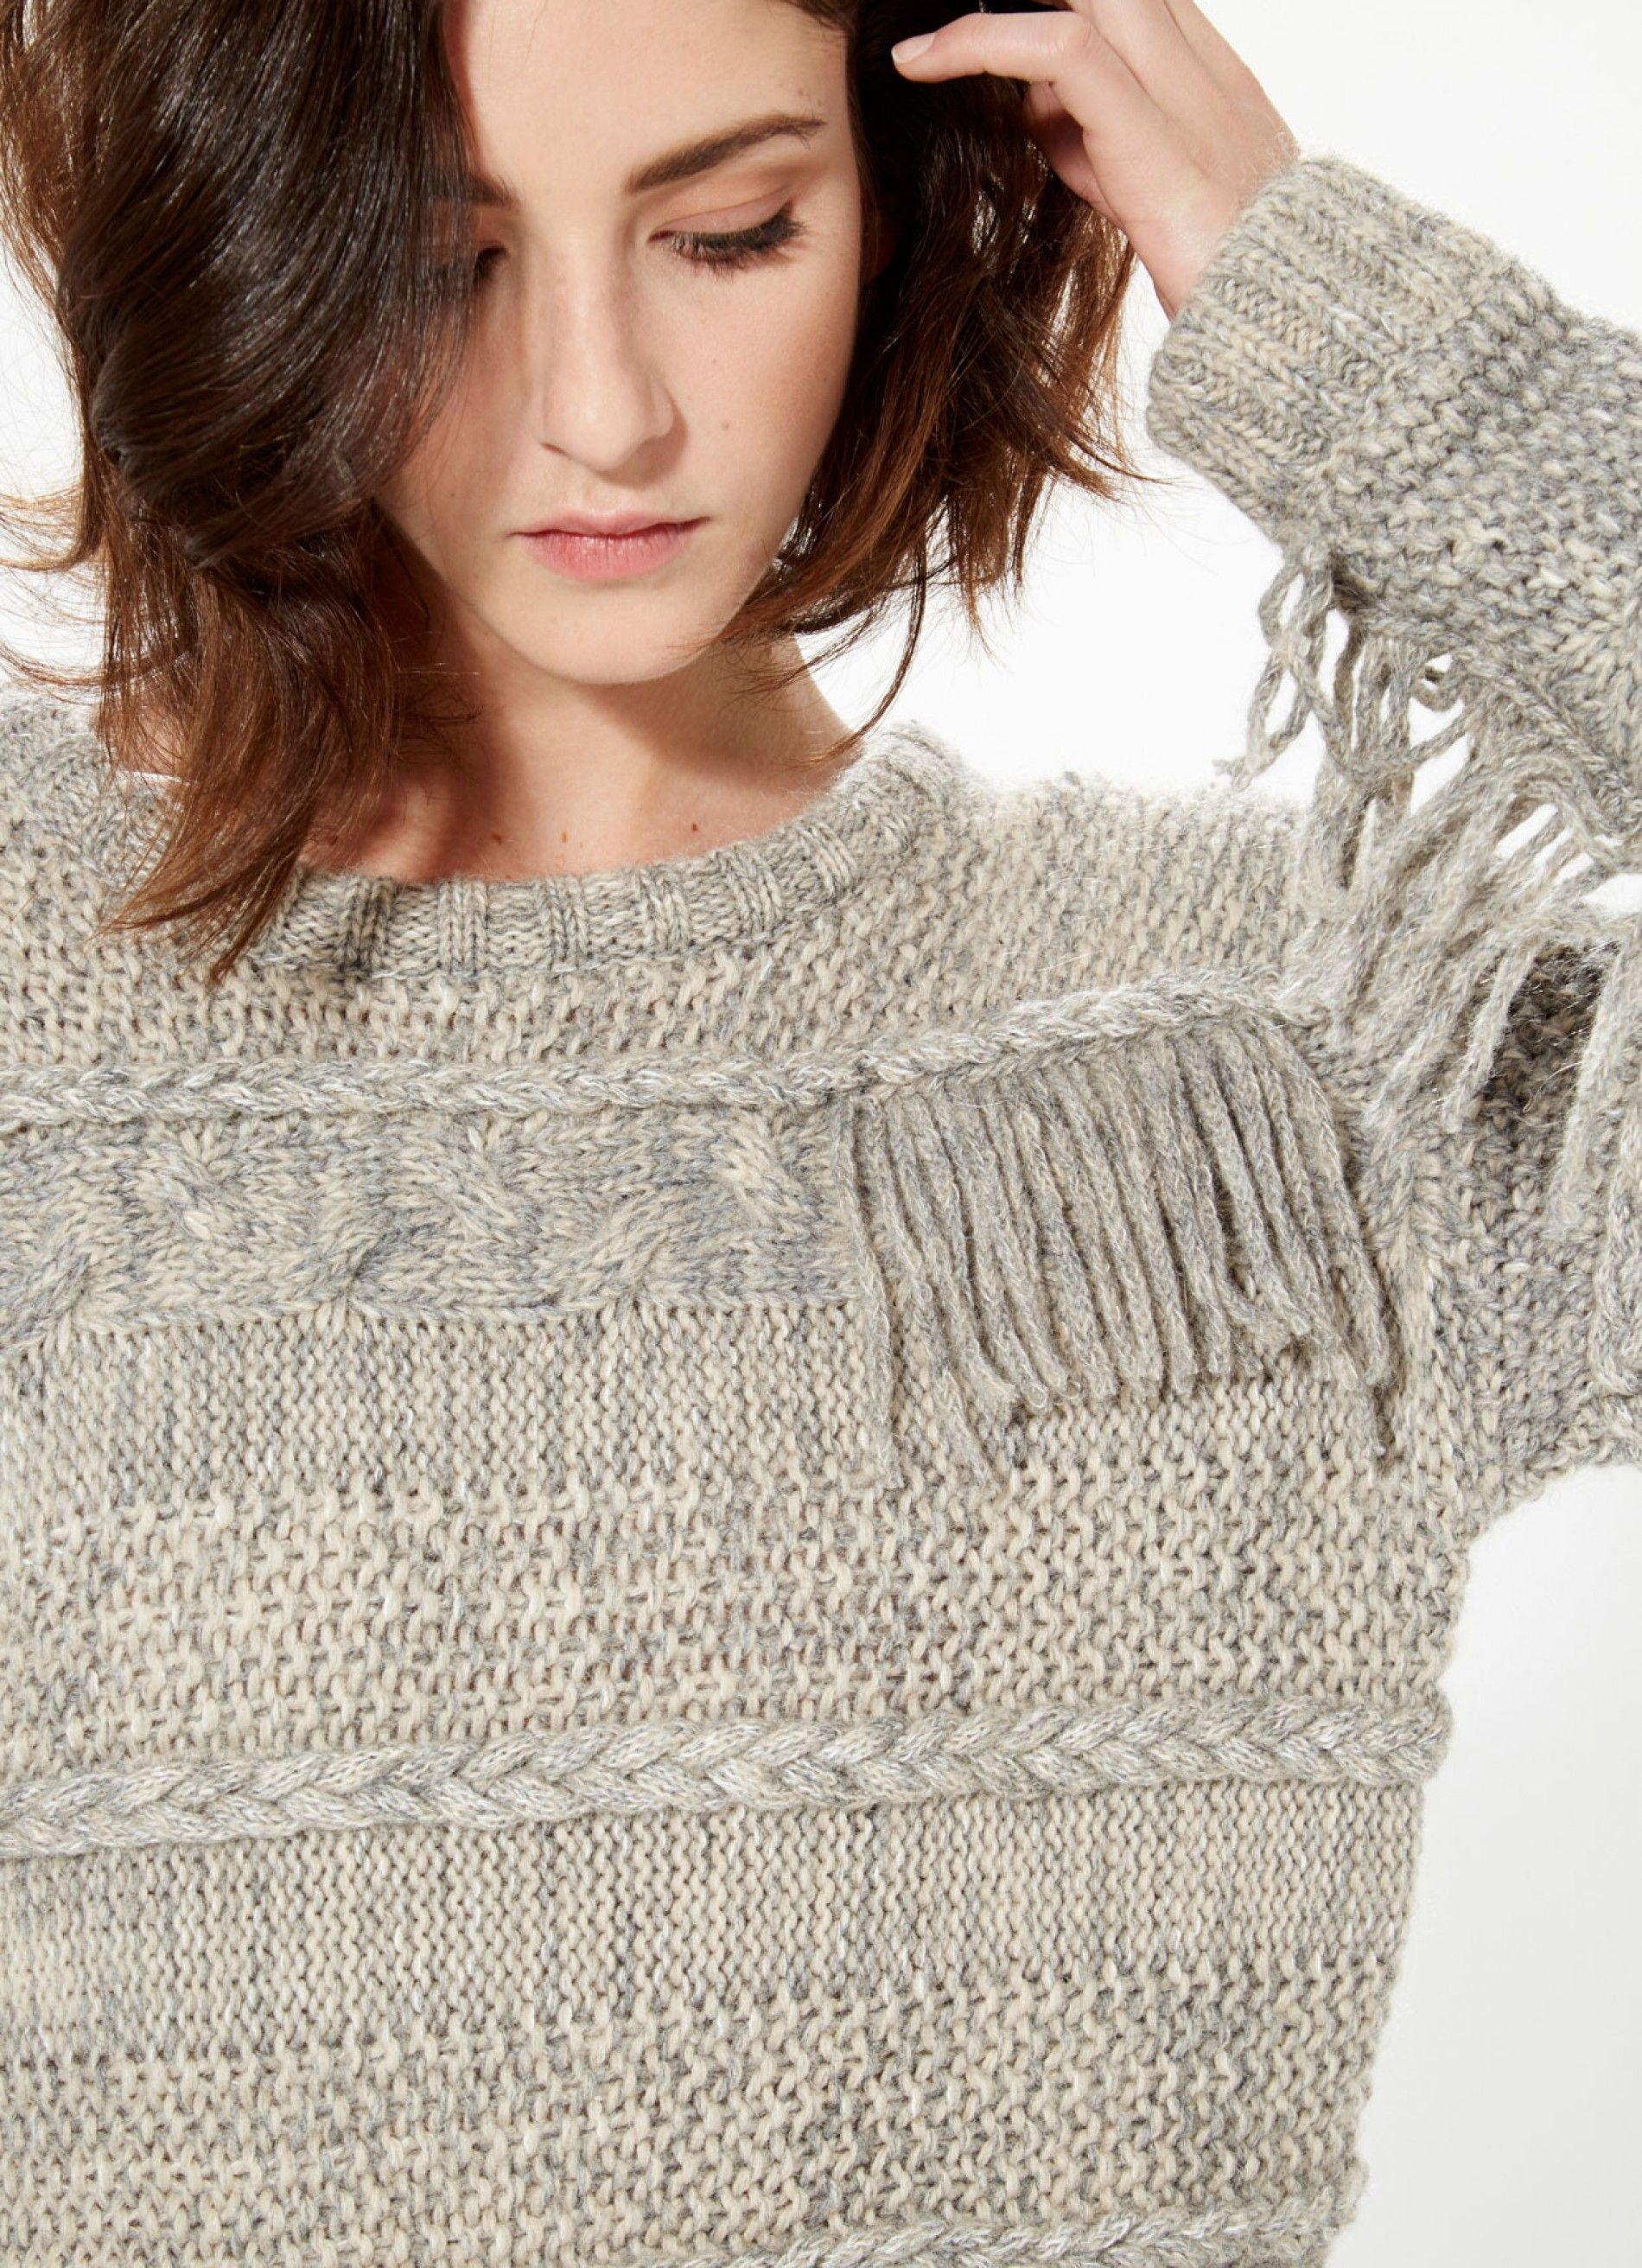 Pepe Jeans London | Strickpullover MAYA | Pepe Jeans London